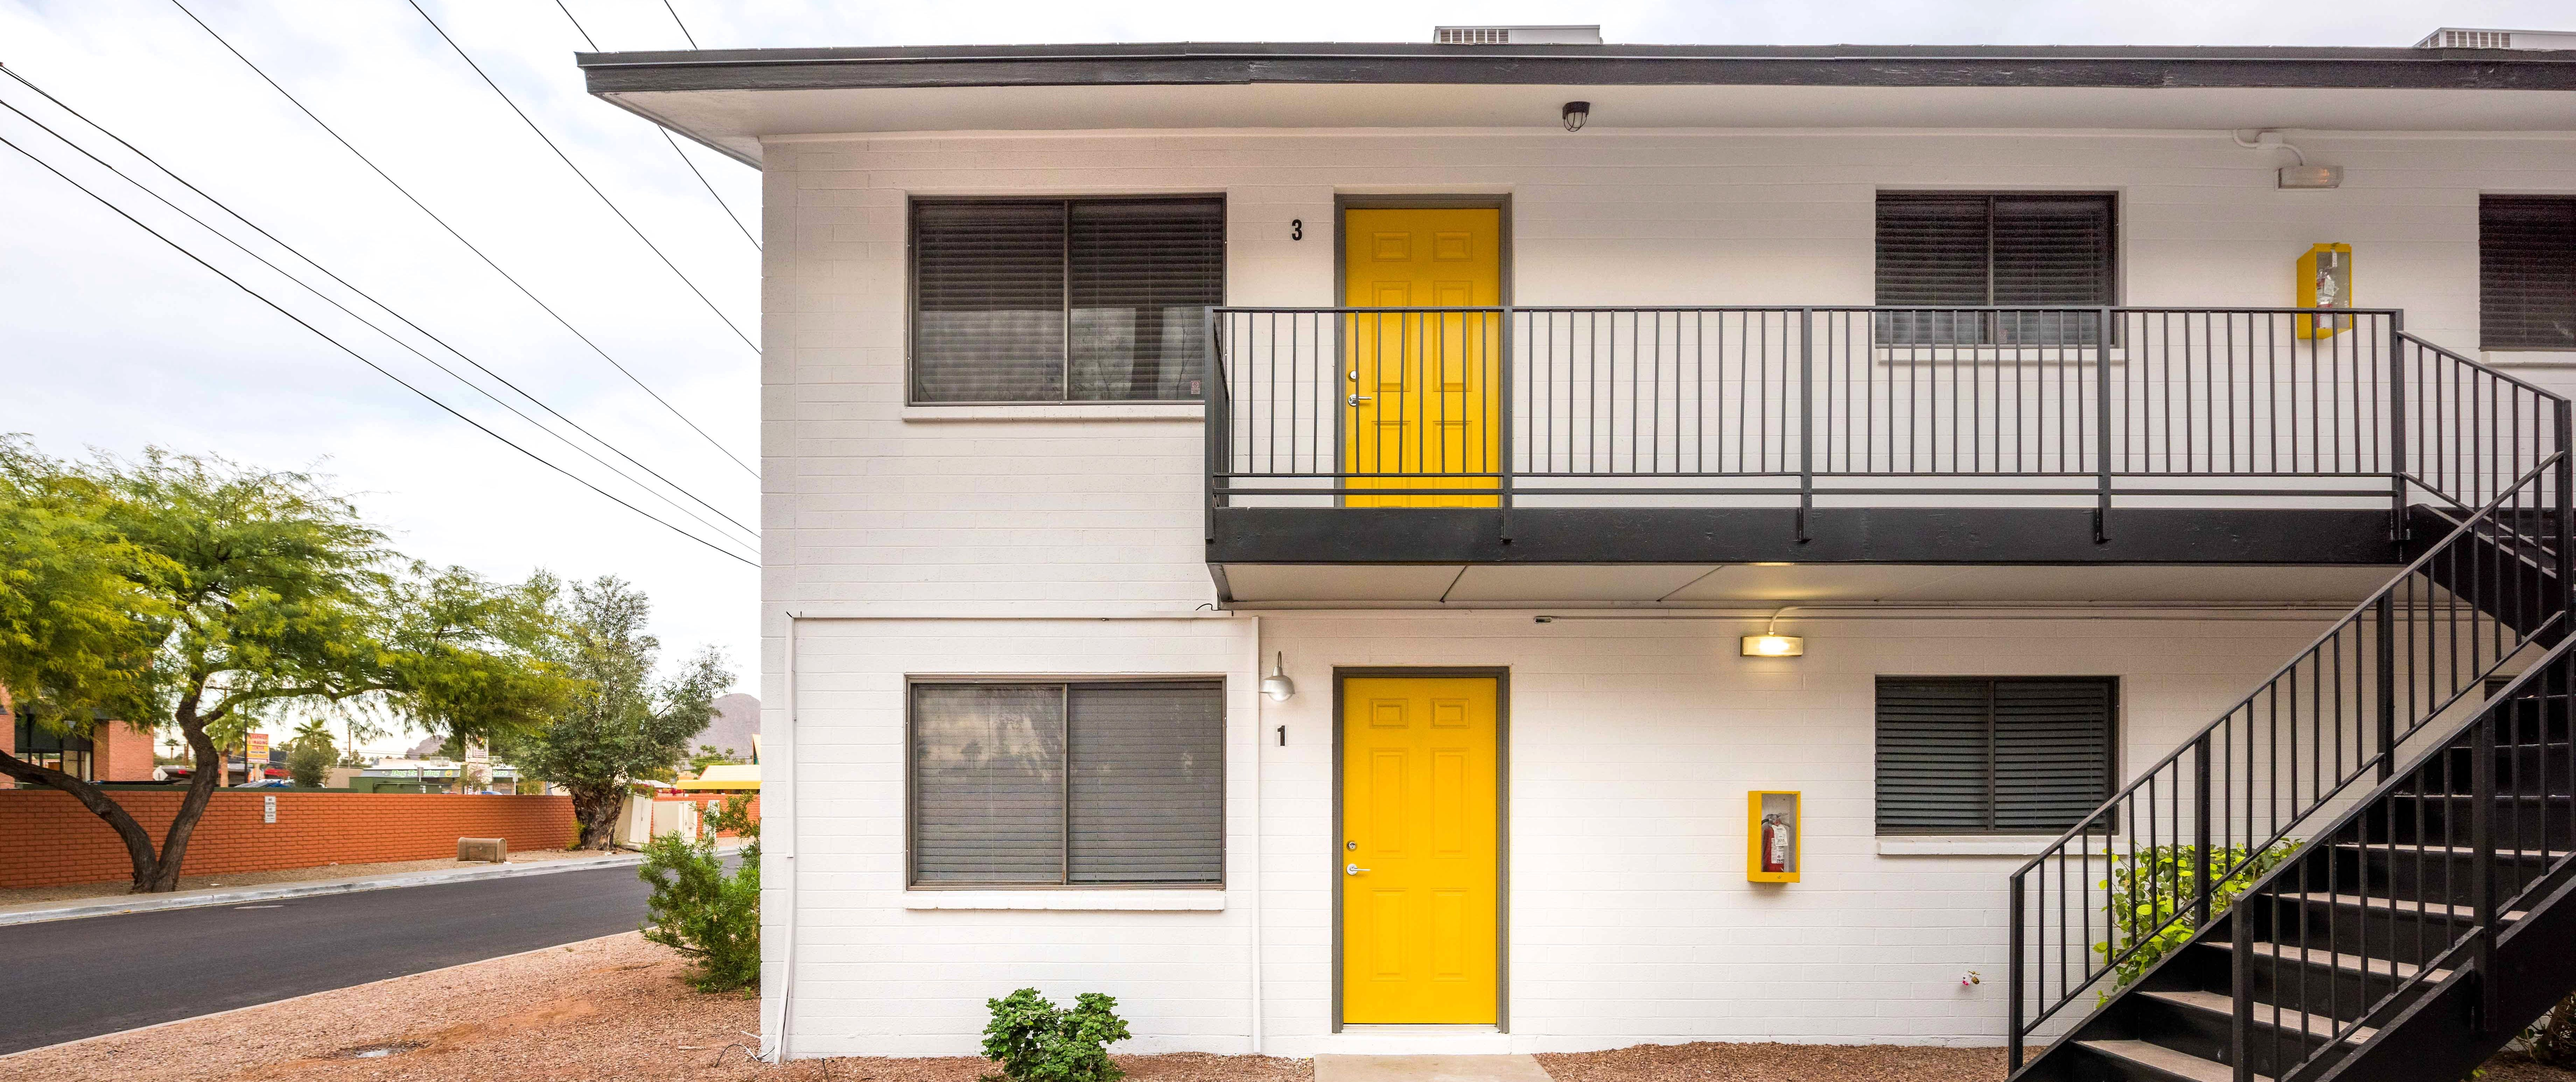 Fairmount 31 Apartments Is A 24 Unit Midcentury Modern Two Story Multifamily Community Located In The Biltmore Are Apartment Communities Biltmore Fairmount